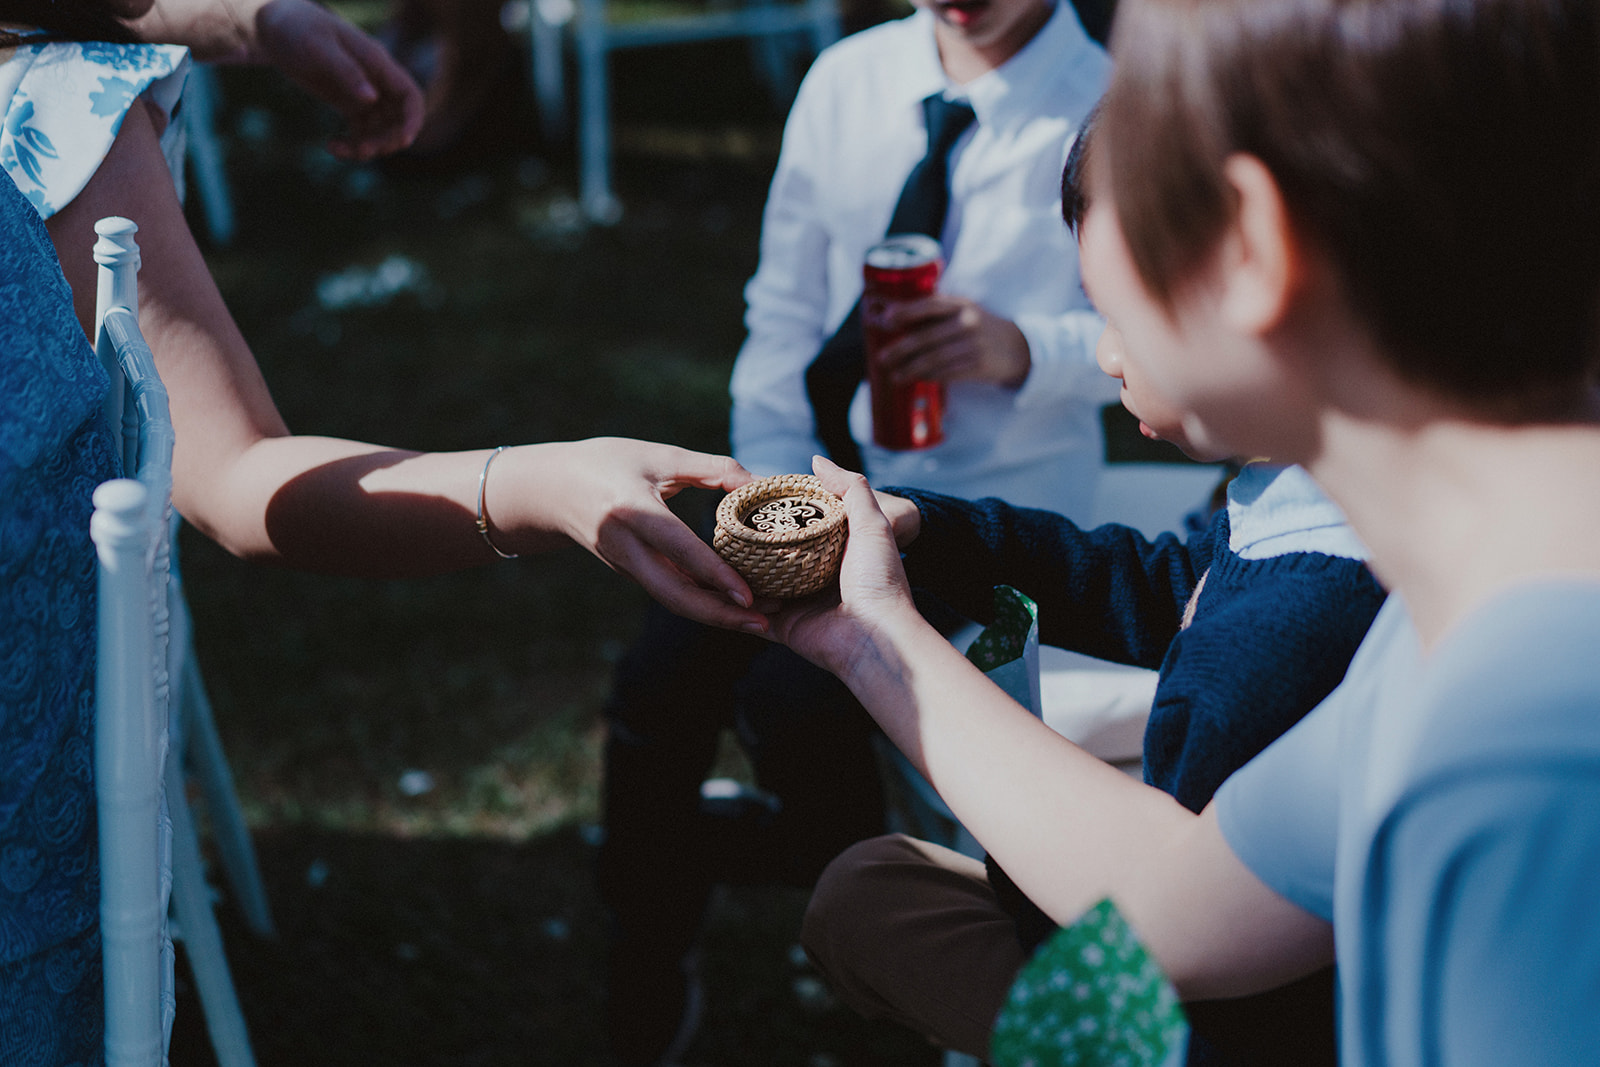 a ring warming ceremony - blessings of the rings by our guests. an idea i found online, actually, and i find it a meaningful way for our guests to be a part of our wedding.